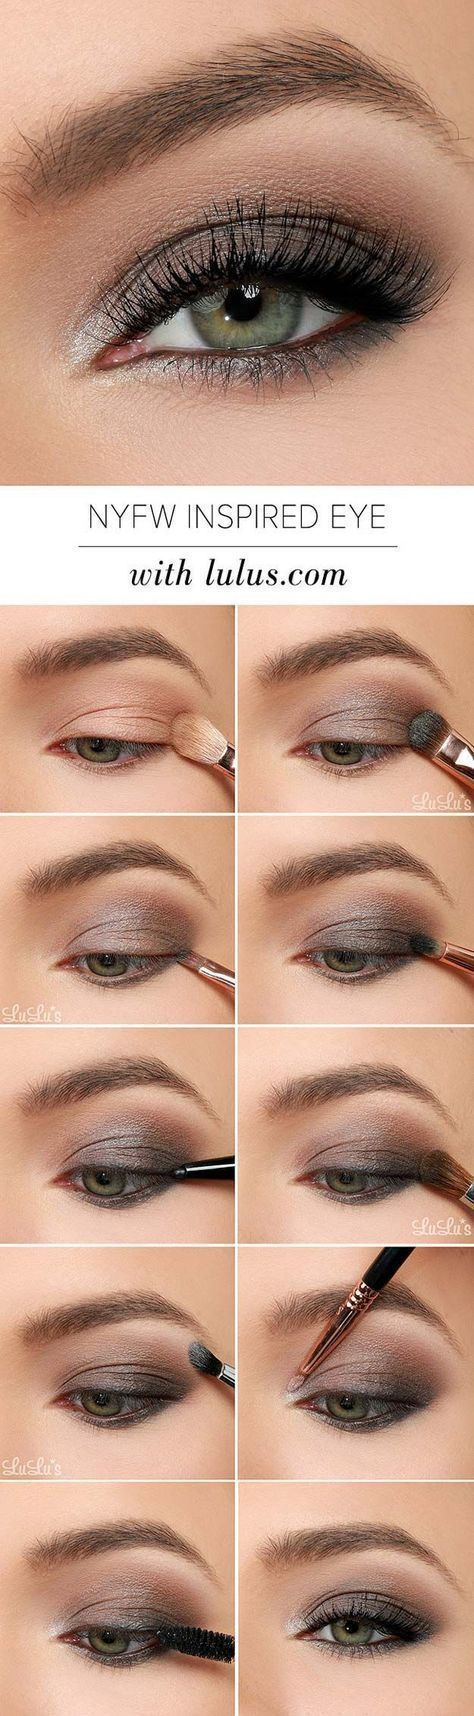 Best Eyeshadow Tutorials - NYFW Inspired Eye Shadow Tutorial - Easy Step by Step How To For Eye Shadow - Cool Makeup Tricks and Eye Makeup Tutorial With Instructions - Quick Ways to Do Smoky Eye, Natural Makeup, Looks for Day and Evening, Brown and Blue Eyes - Cool Ideas for Beginners and Teens http://diyprojectsforteens.com/best-eyeshadow-tutorials #makeuptricks #eyemakeup #blueeyemakeup #makeuplooksforbrowneyes #naturalmakeup #eyeshadowslooks